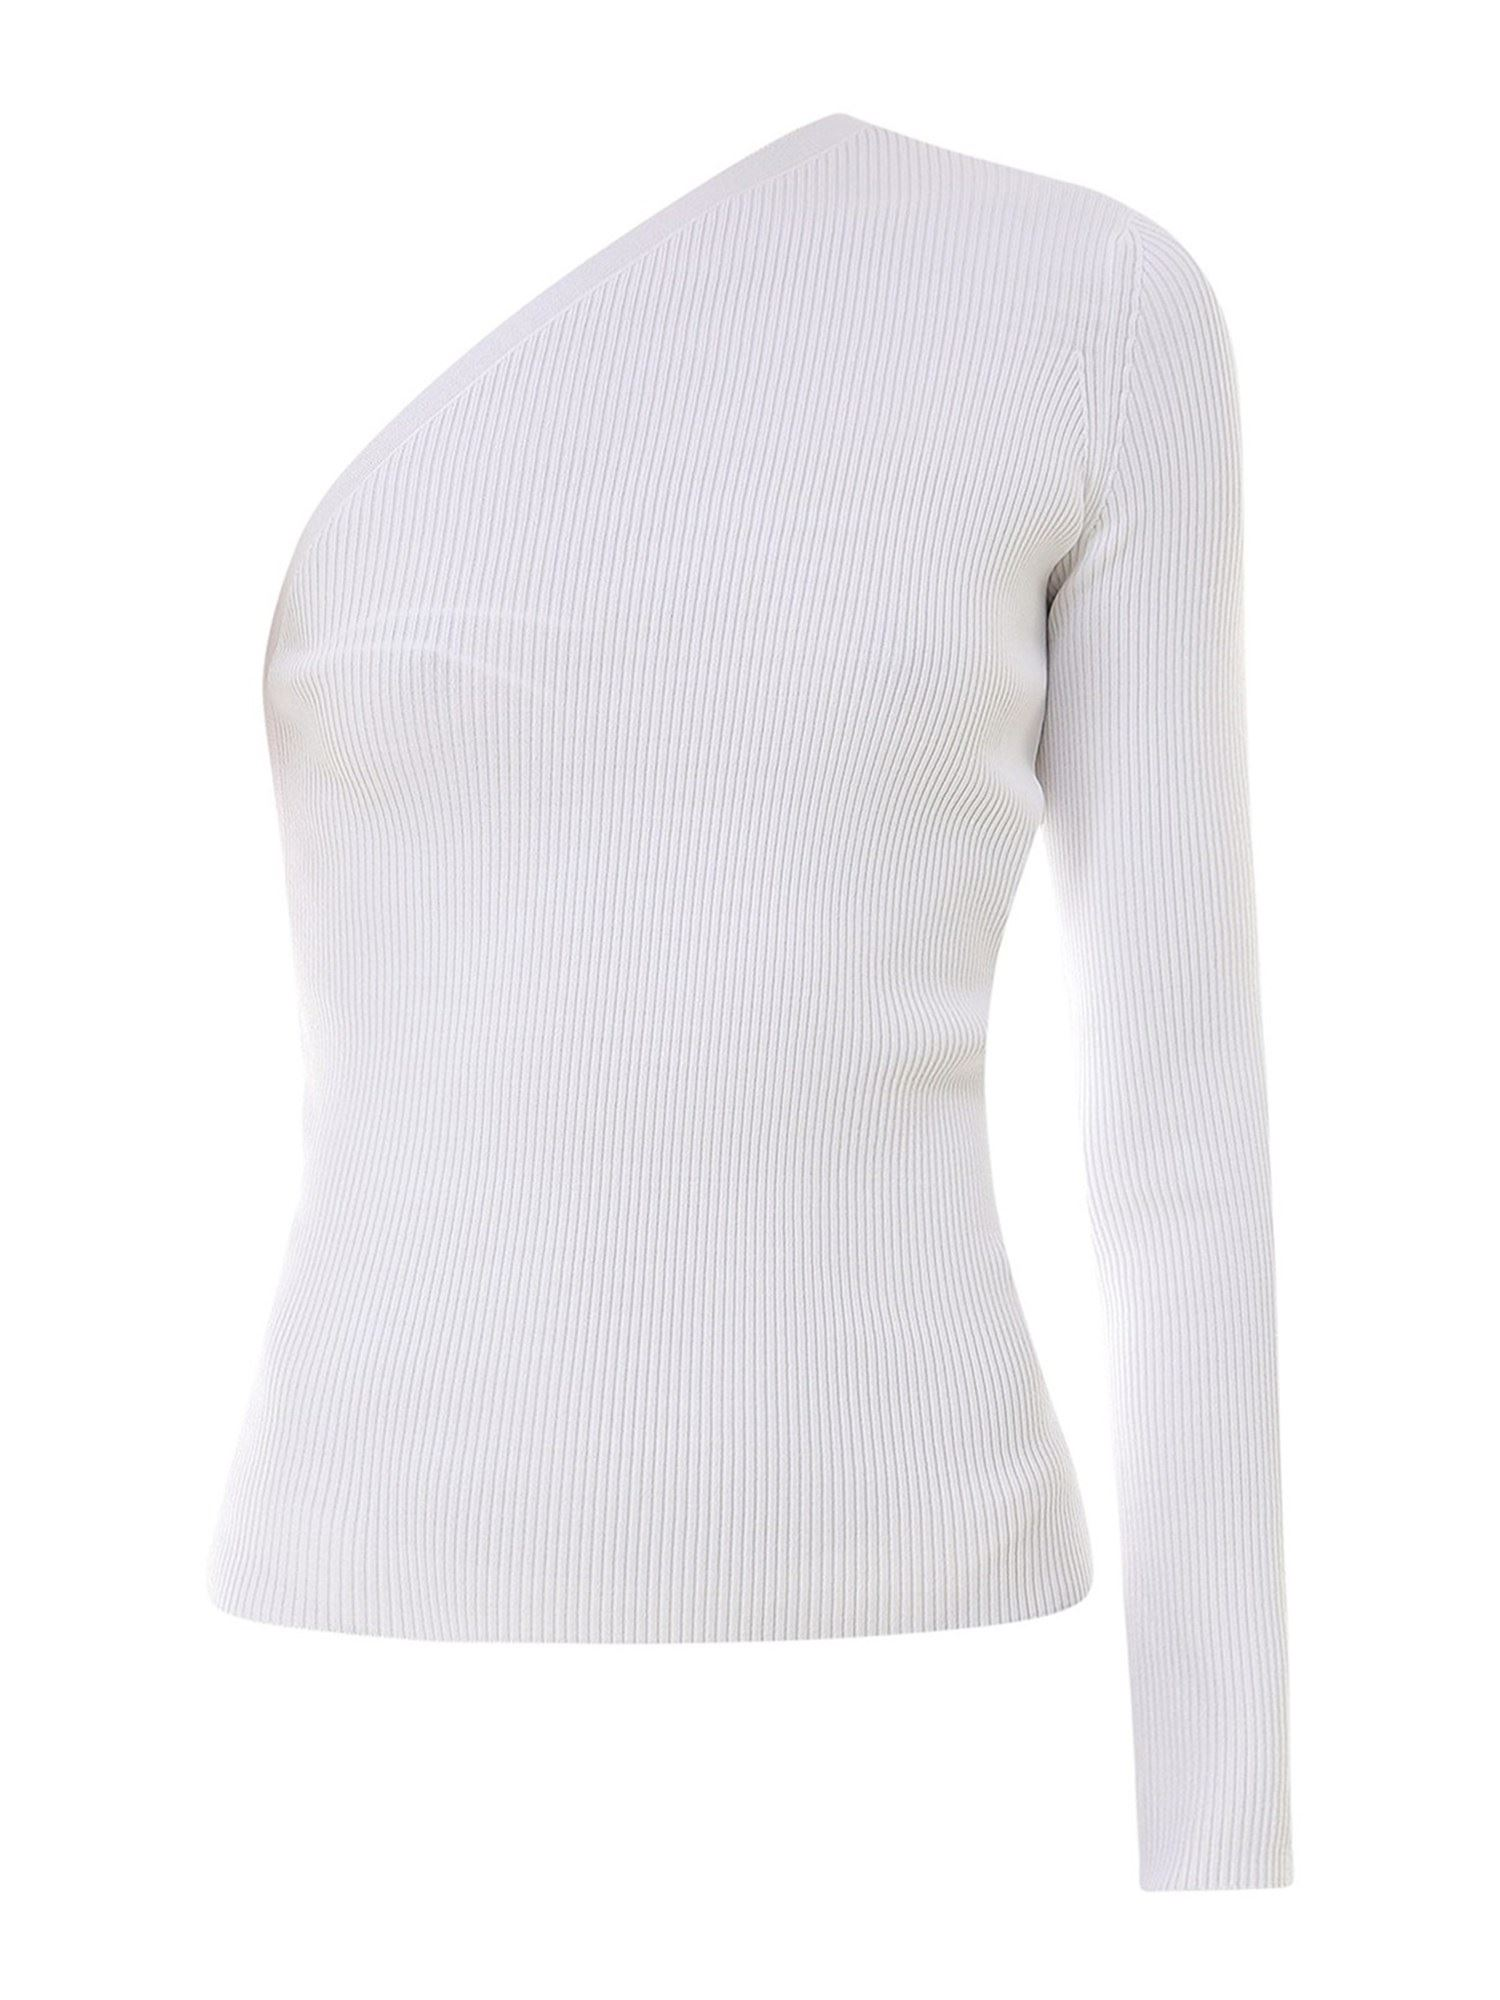 Sportmax ONE SHOULDER TOP IN WHITE